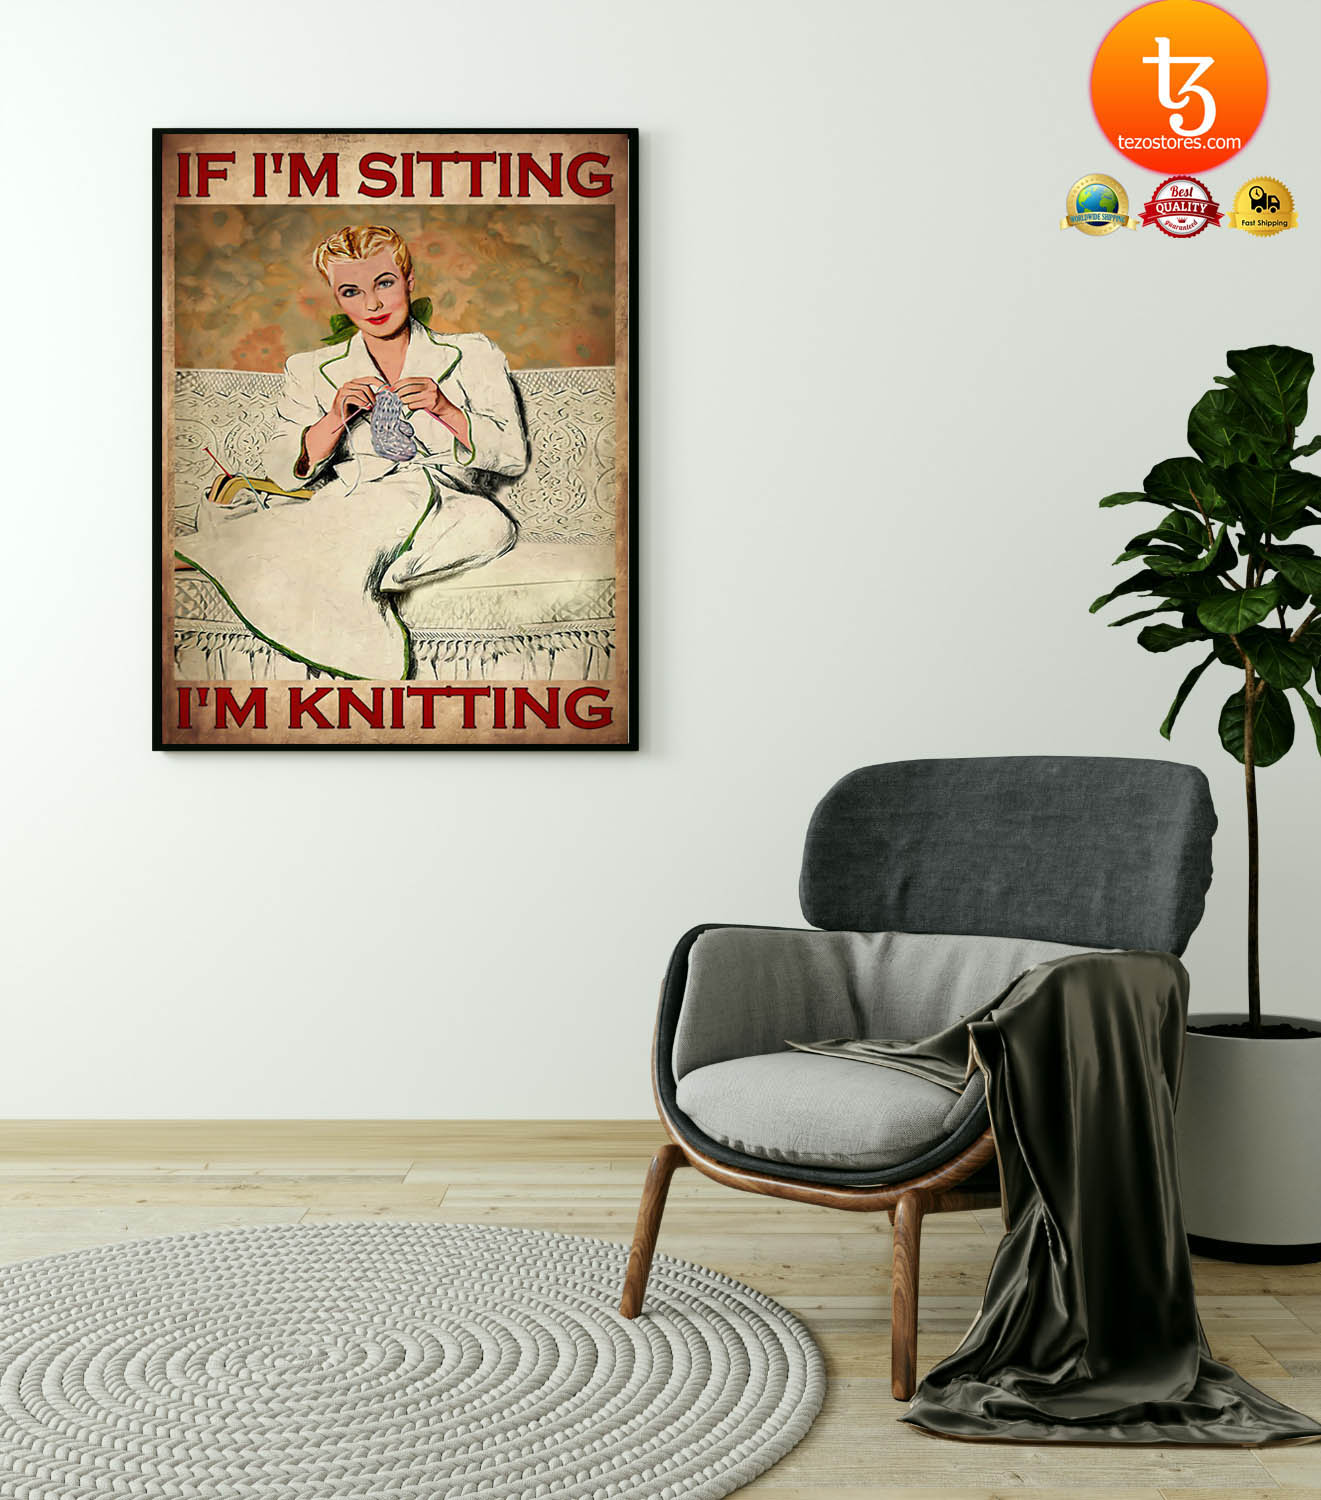 If i'm sitting i'm knitting poster 23